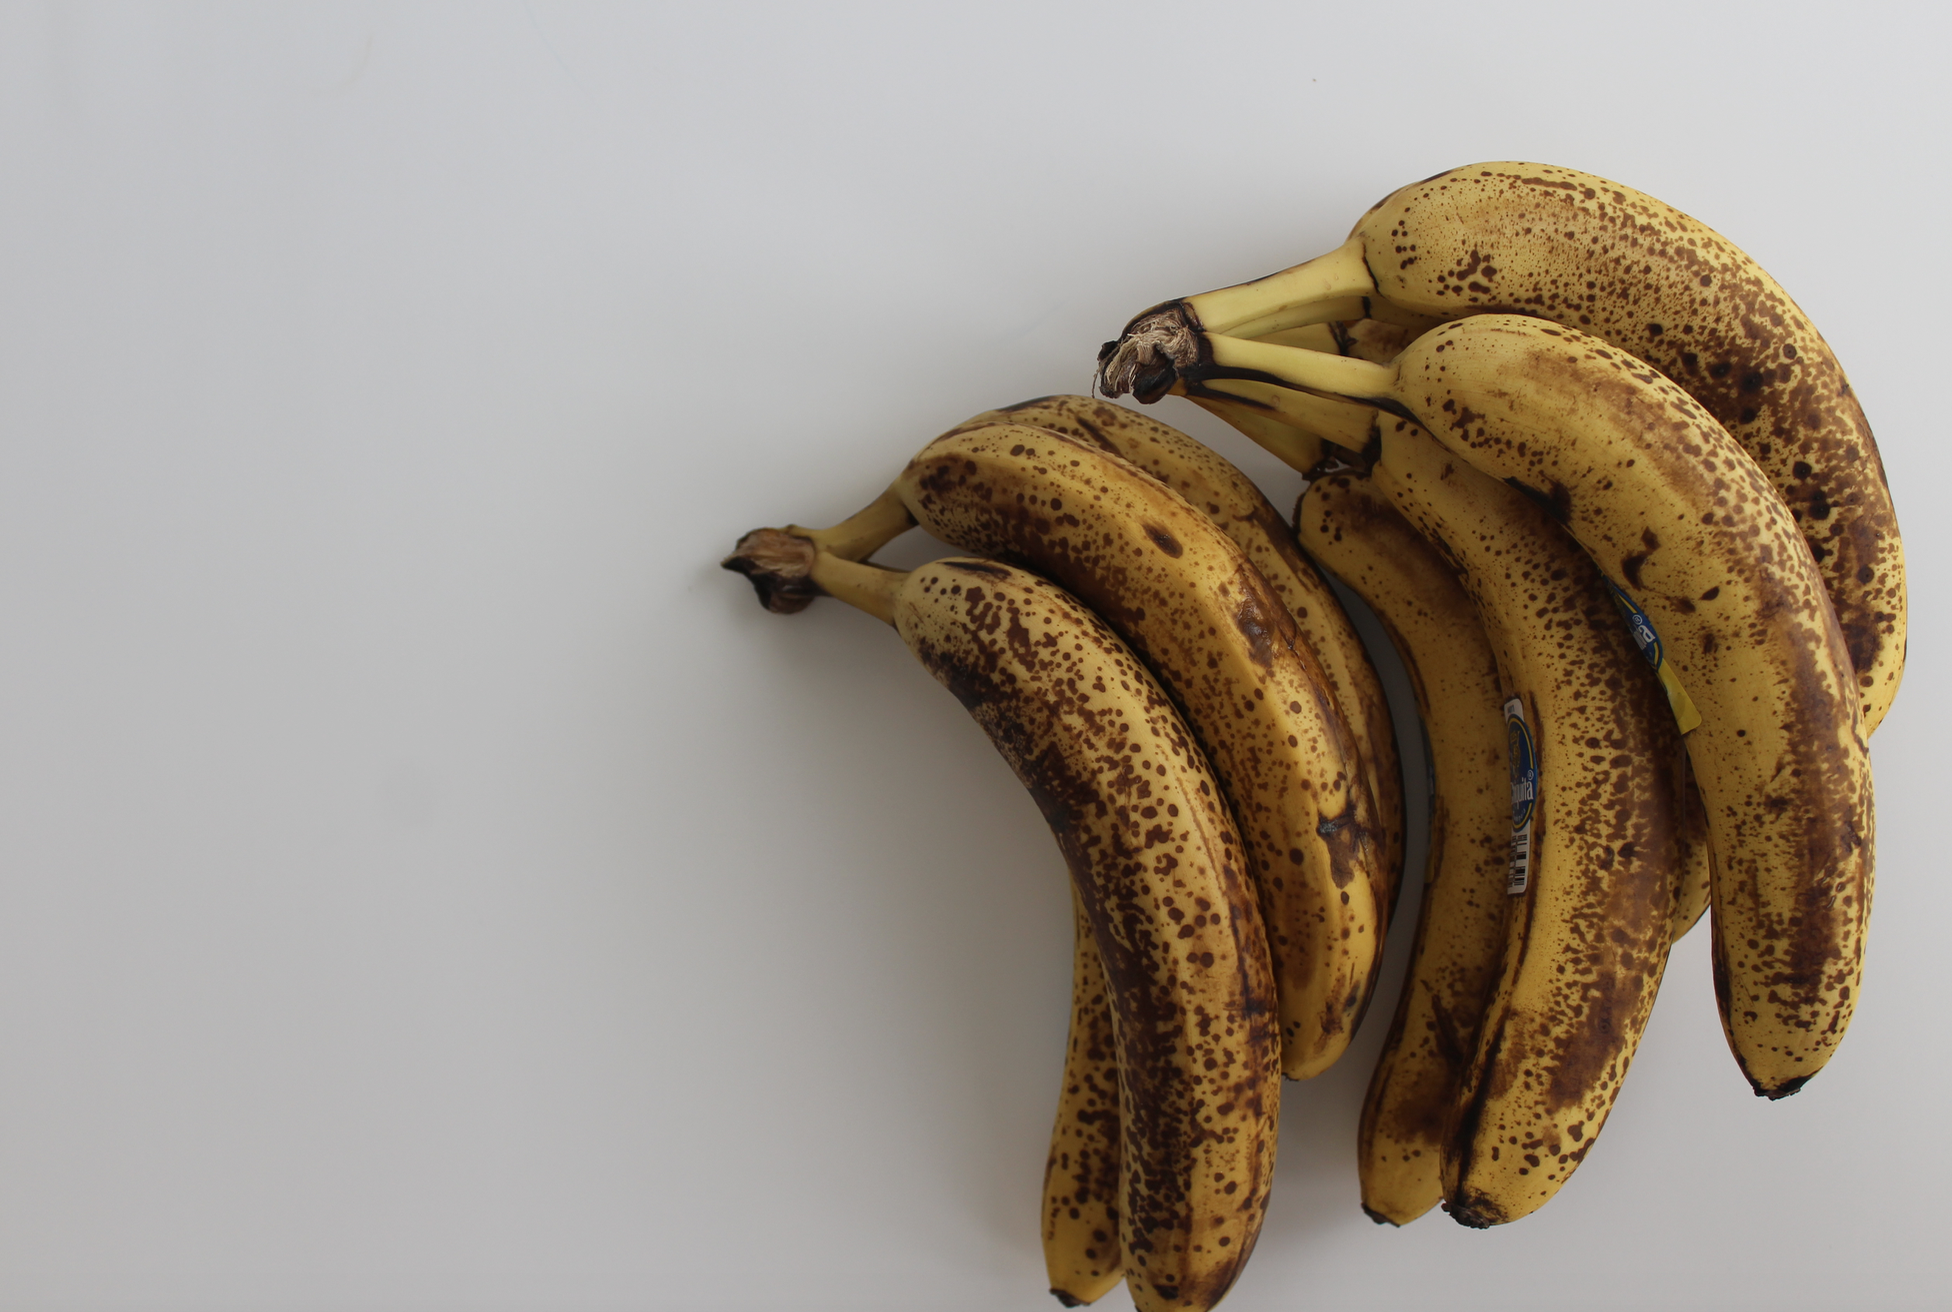 ripe bananas on white counter